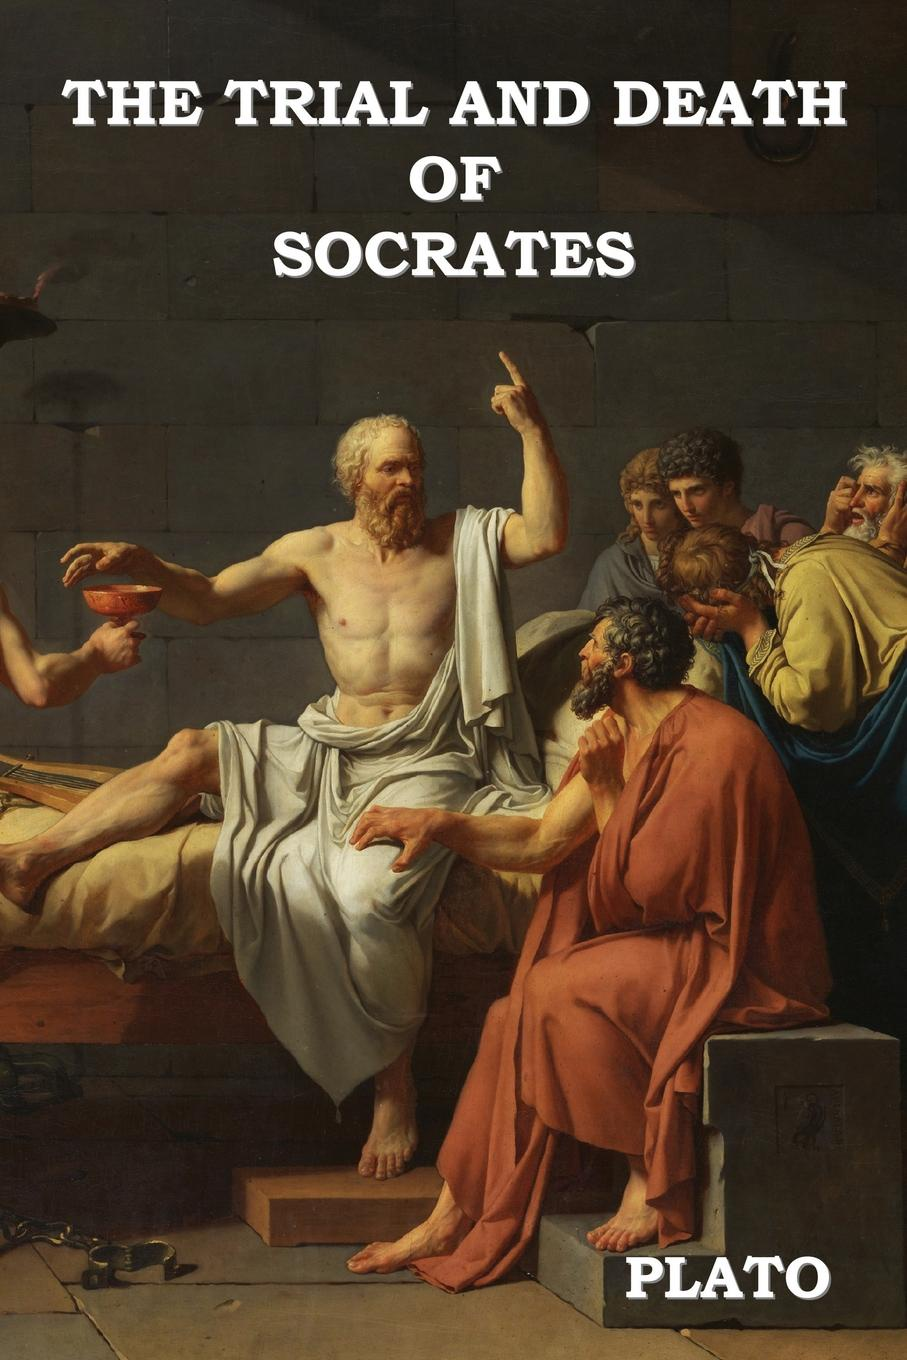 Plato, Benjamin Jowett The Trial and Death of Socrates xenophon the memorable thoughts of socrates